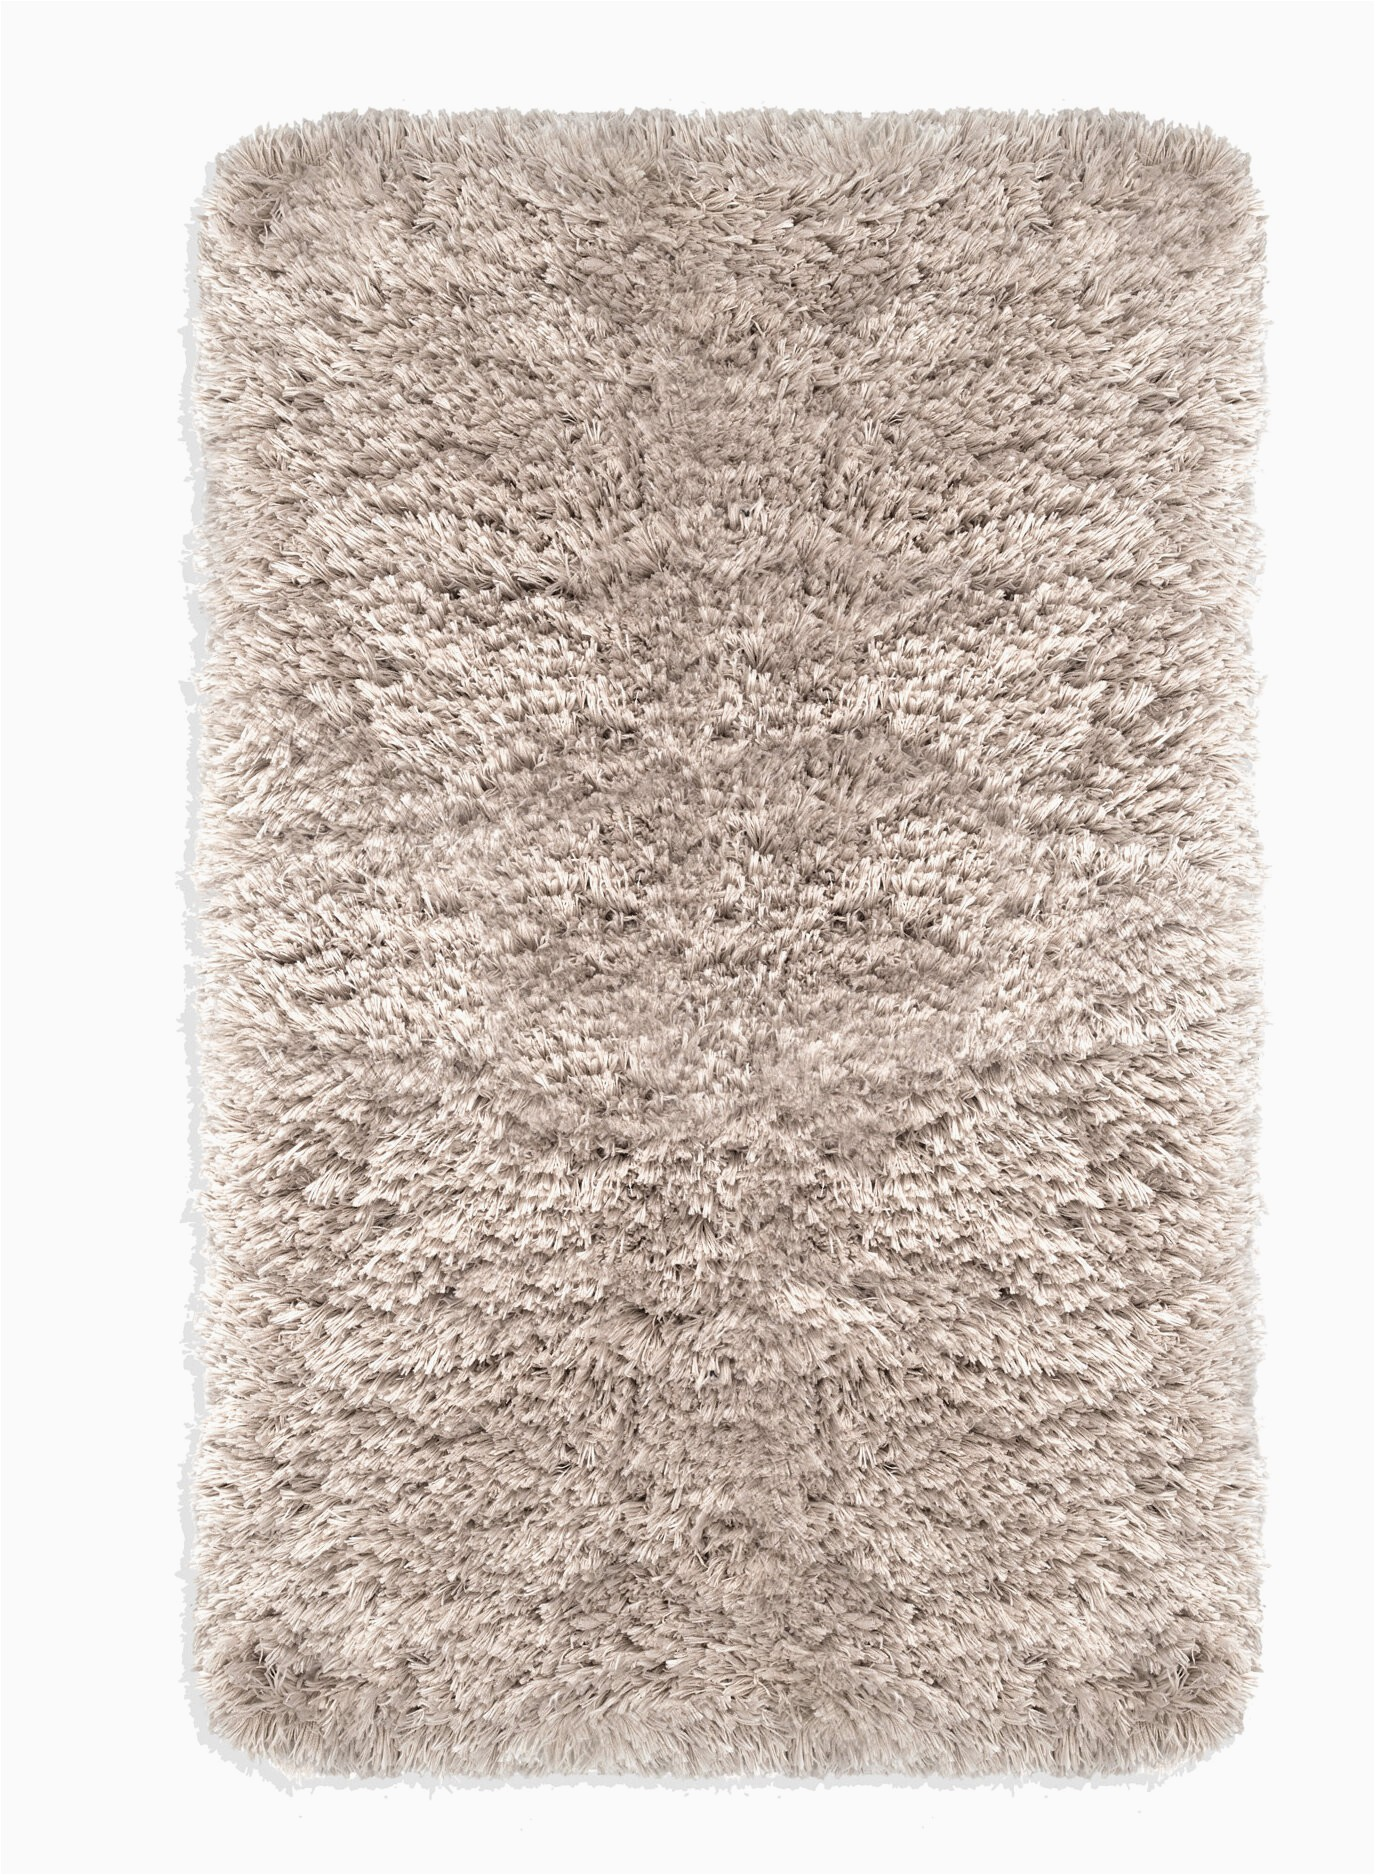 Taupe Colored Bath Rugs Gerwalta Rectangular Polyester Non Slip solid Bath Rug